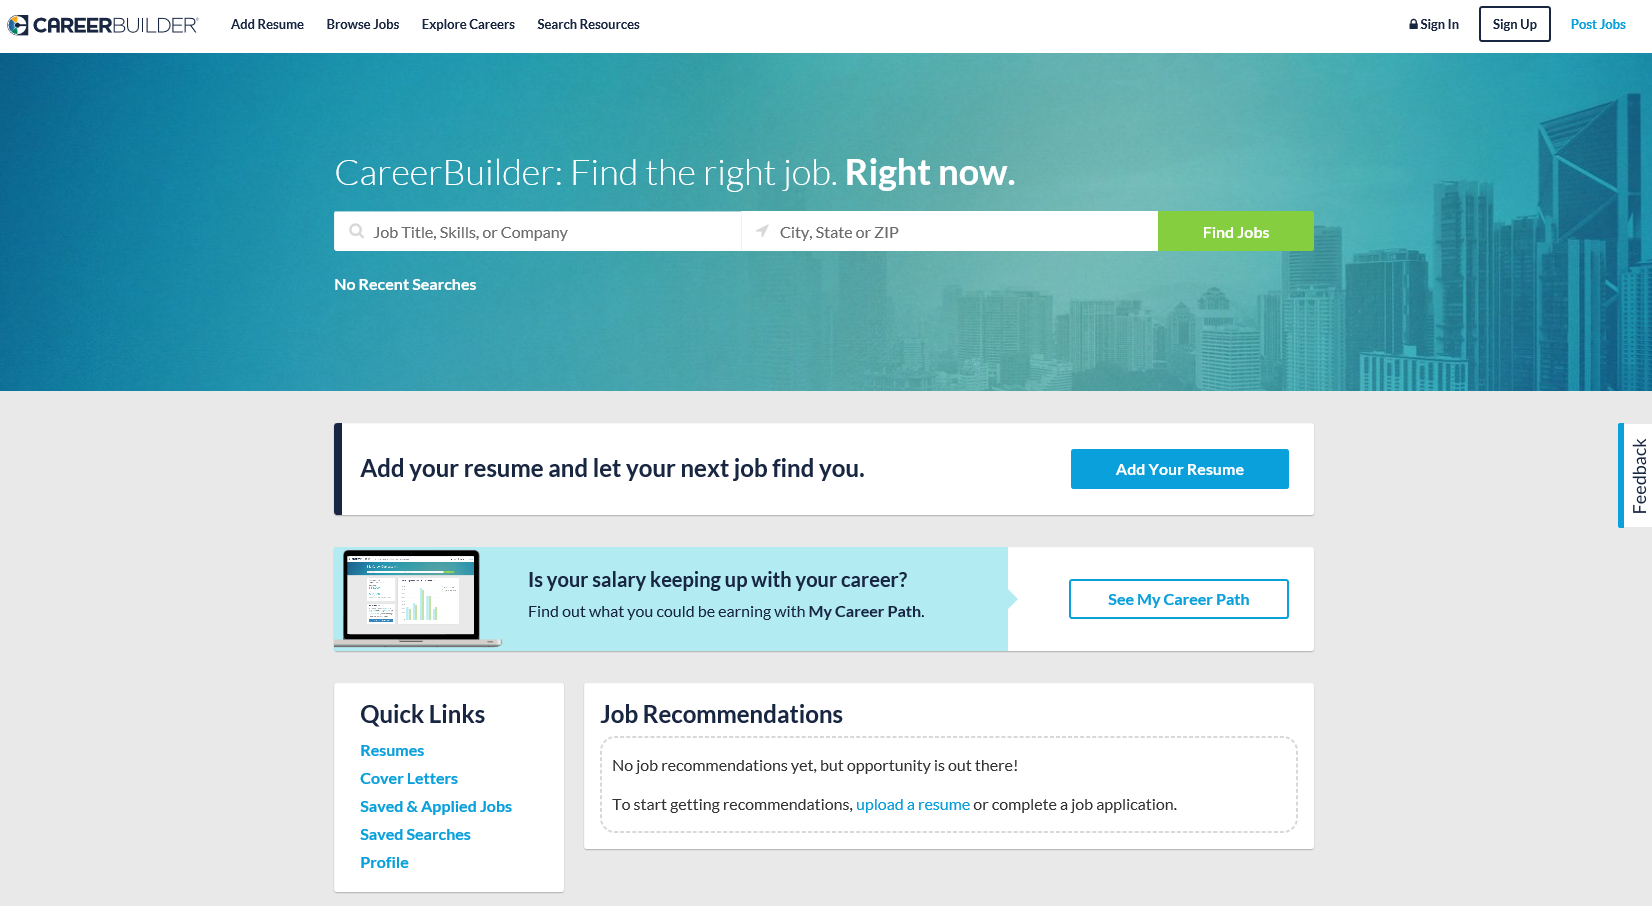 CareerBuilder Job Board Demo - CareerBuilder+Homepage.PNG